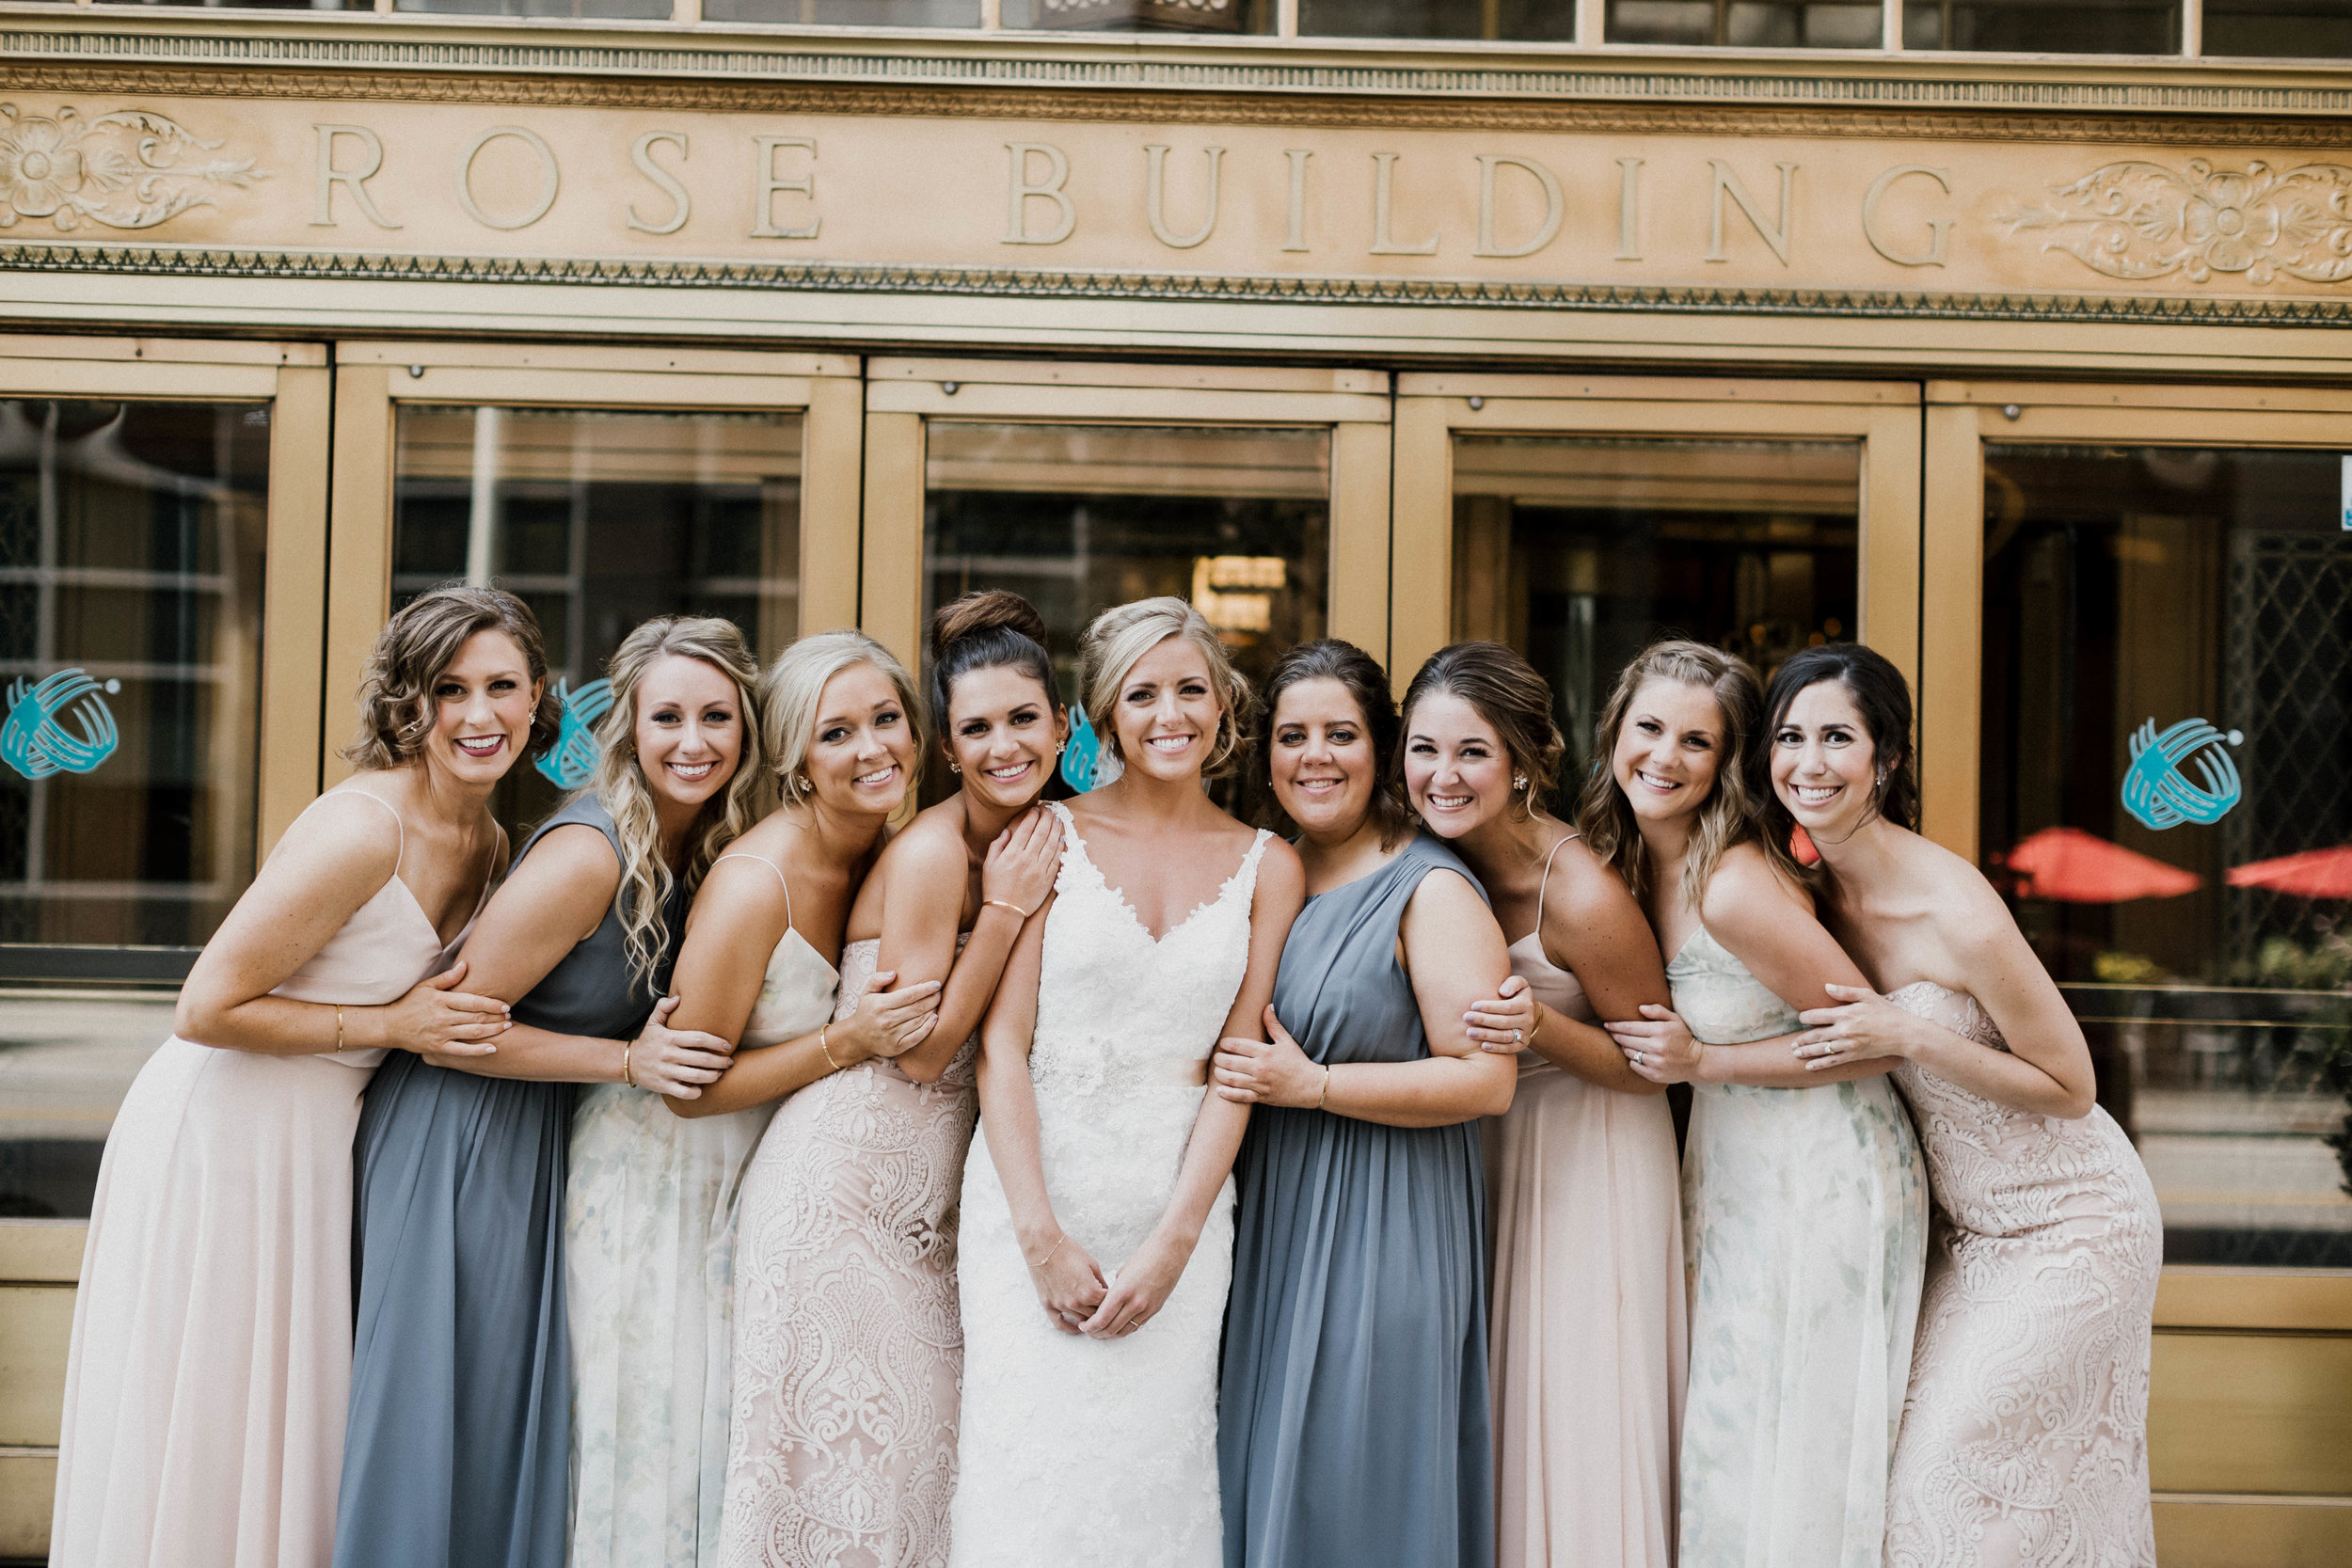 The largest collection of bridesmaid dresses - from the world's leading designers! .